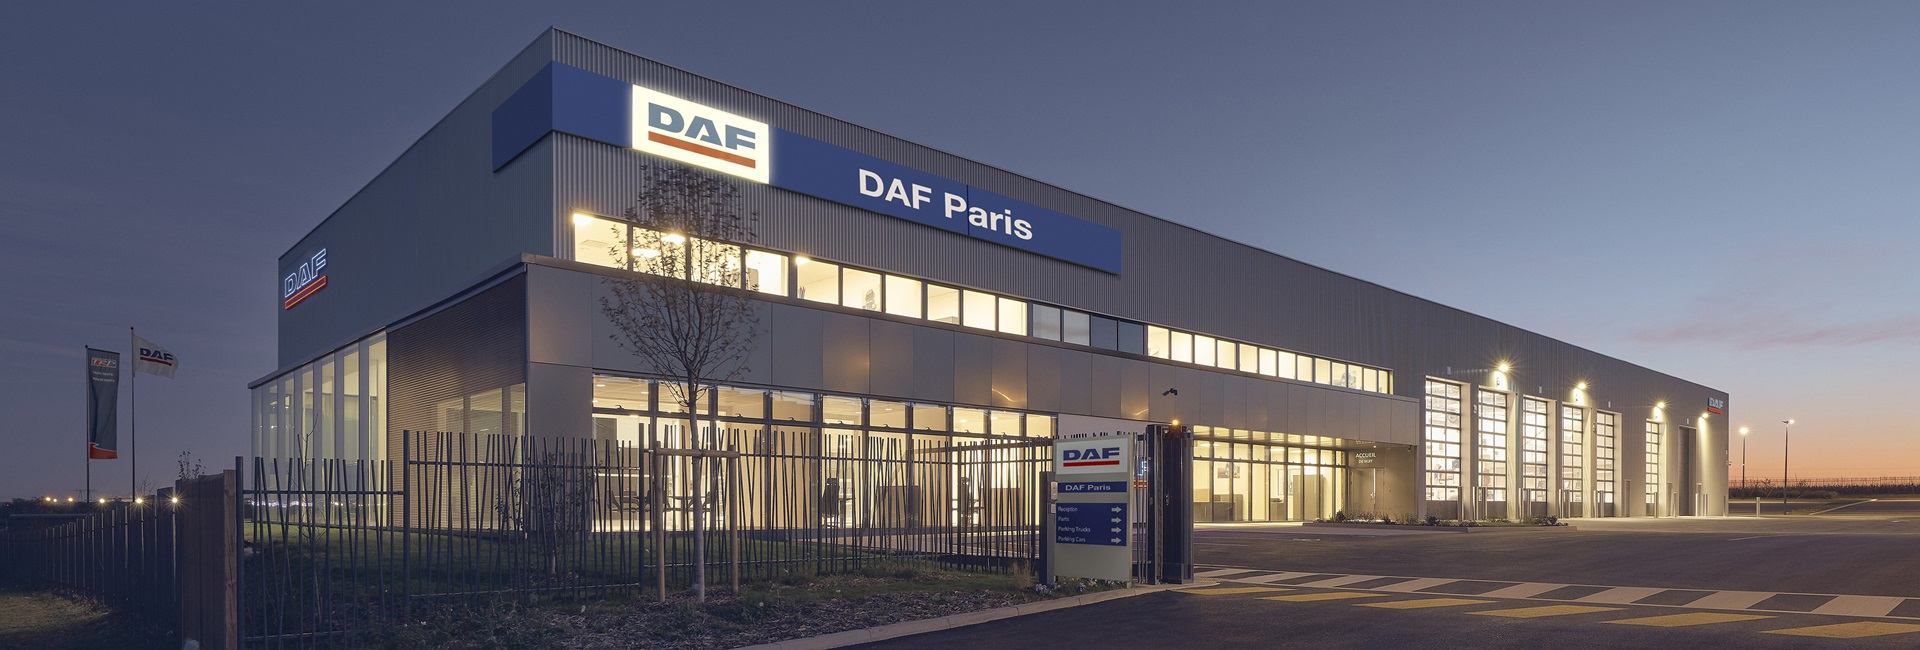 DAF Paris - Louvres